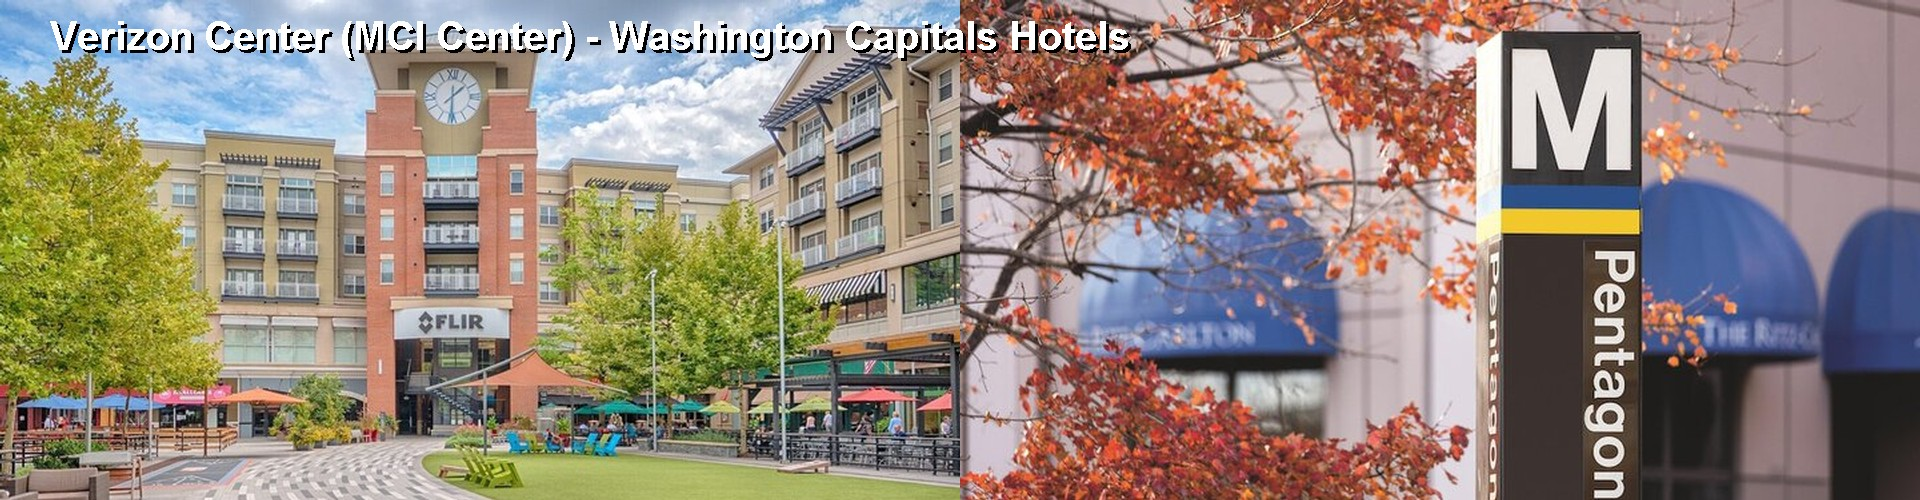 Hotels Close To Verizon Center In Washington Dc